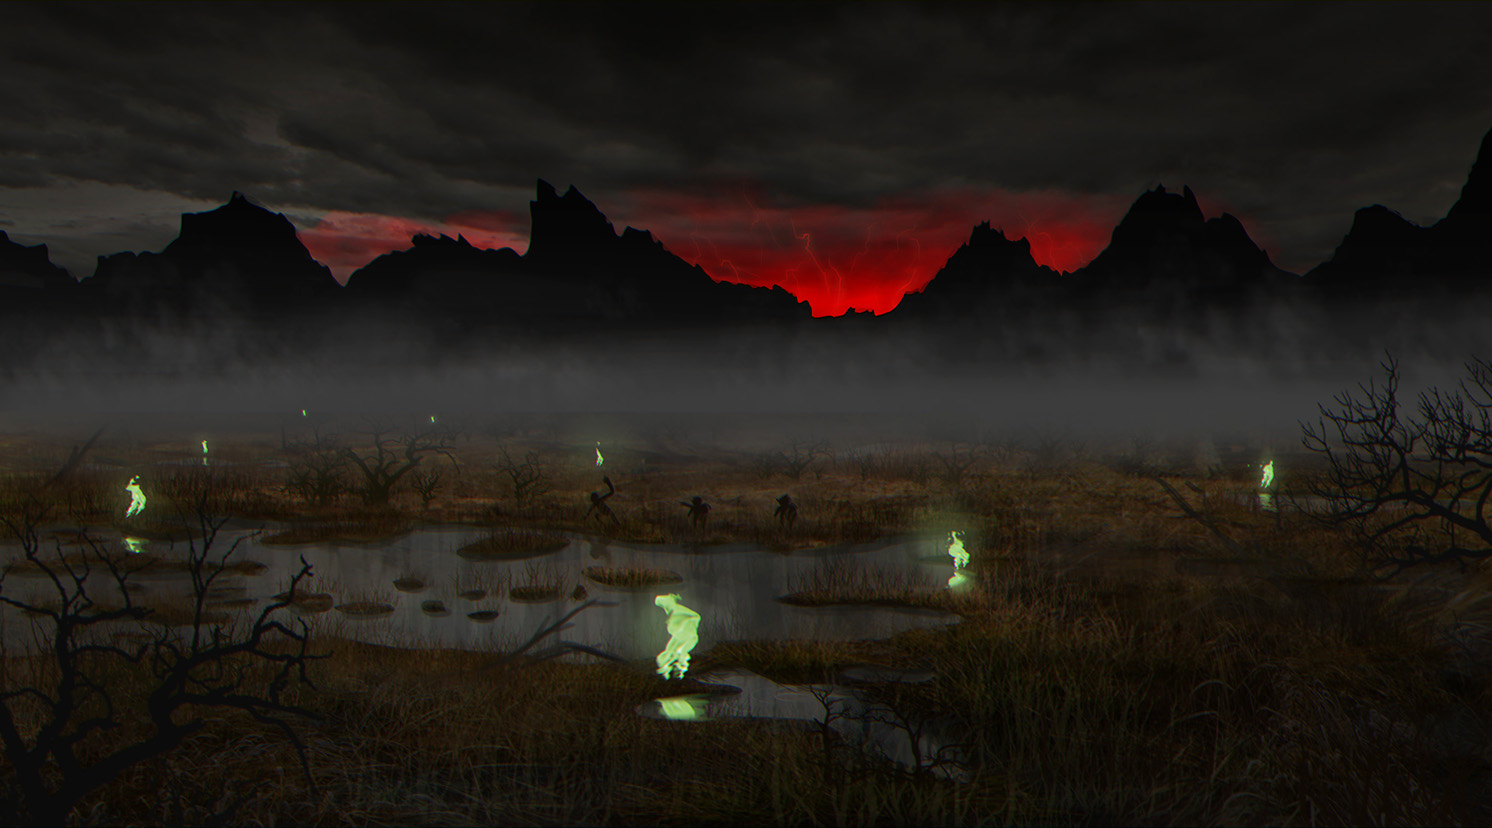 Dead Marshes - Don't Follow the Lights!